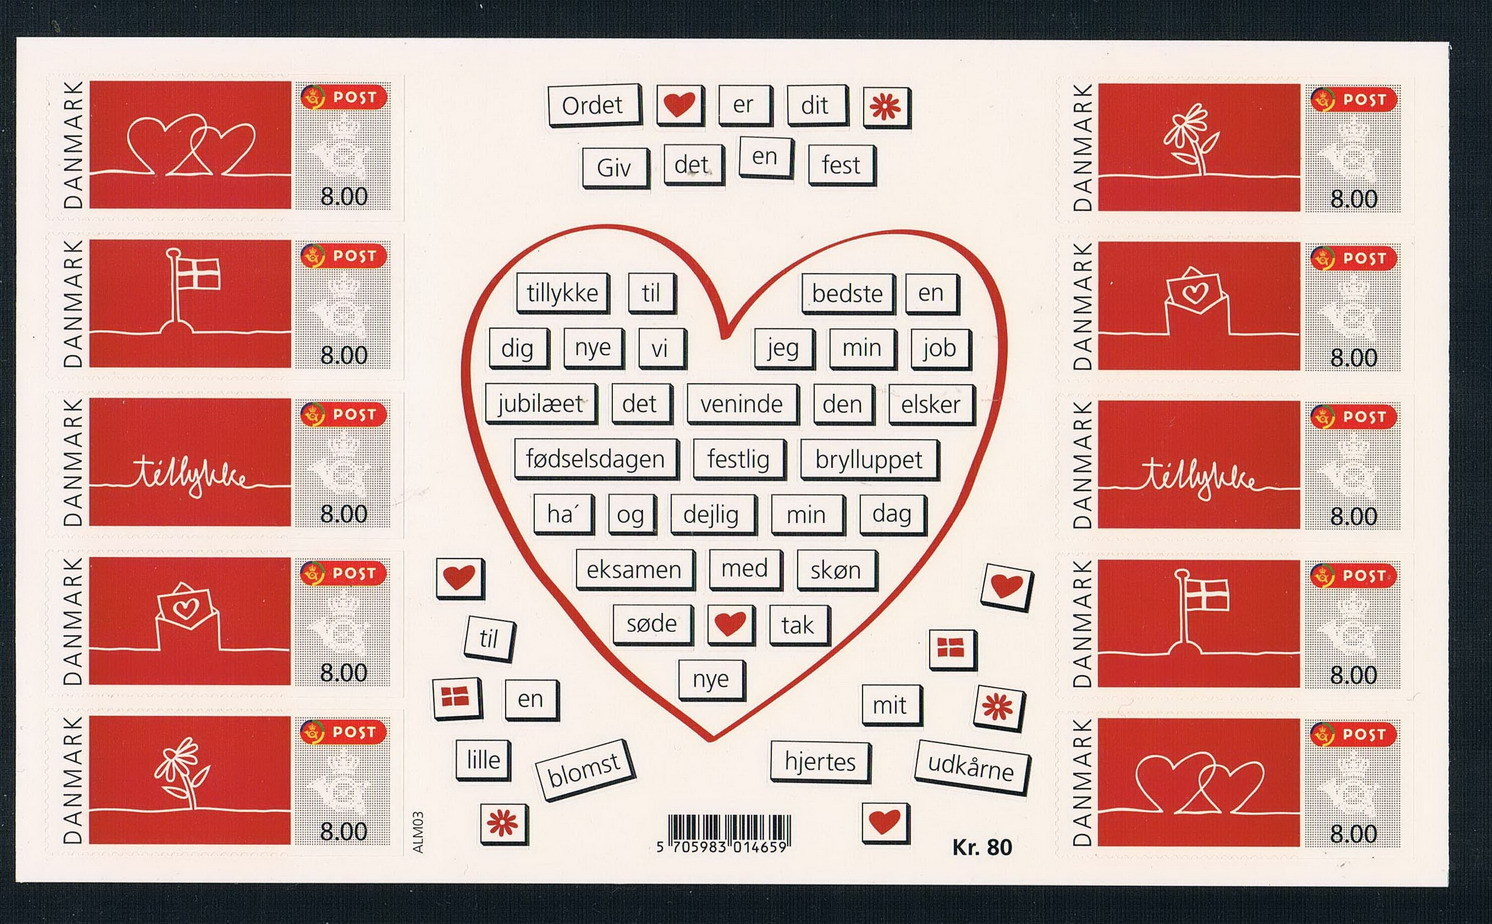 M0856 Denmark 2011 Valentine's Day greetings stamps stamps 1MS new edition stickers small flag 1205 купить